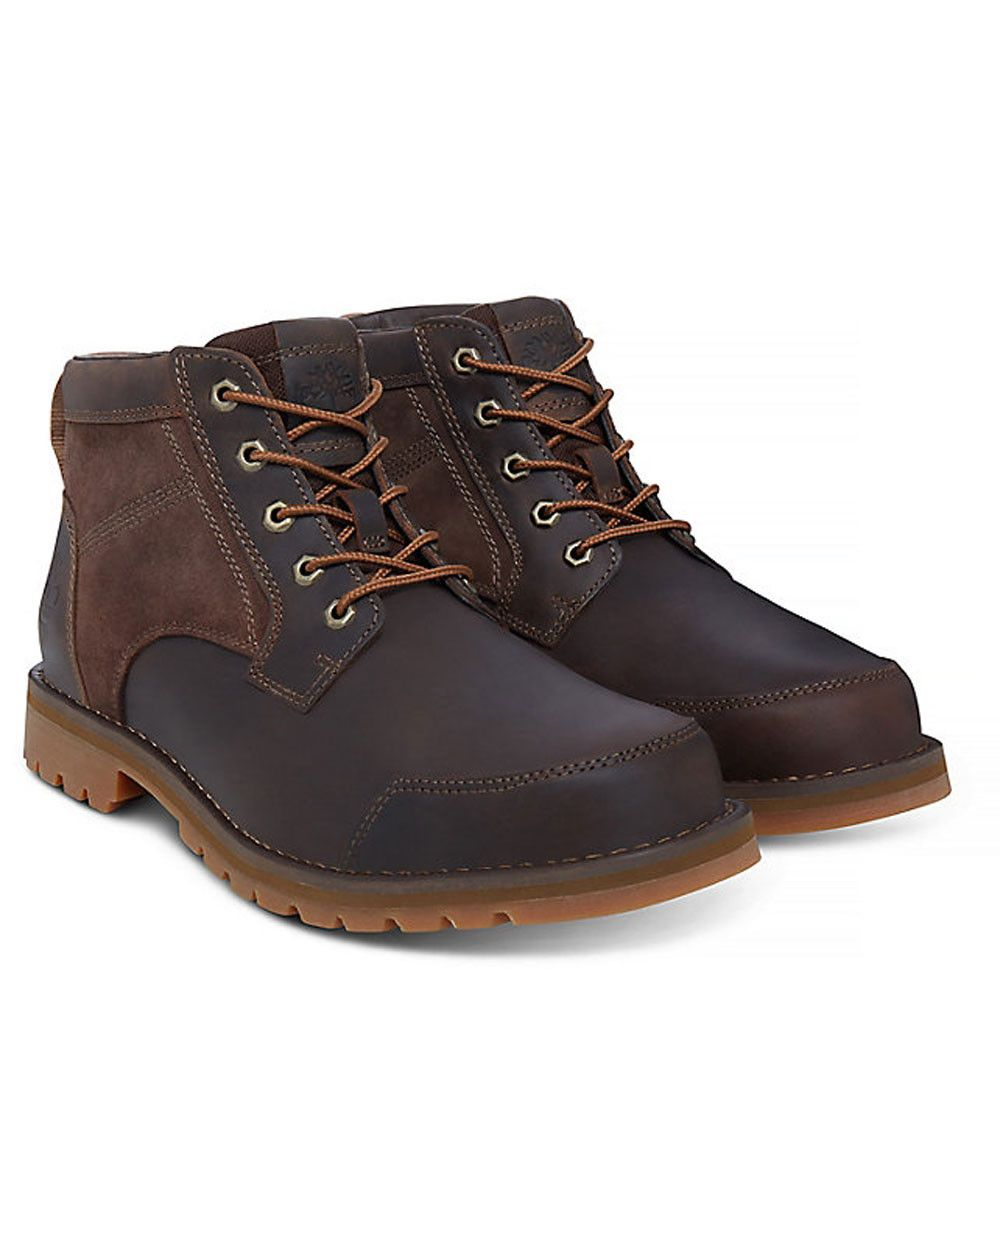 204a23b75e1d Timberland Larchmont Chukka (dk brown) size 13 14 15 Boots in 2019 ...